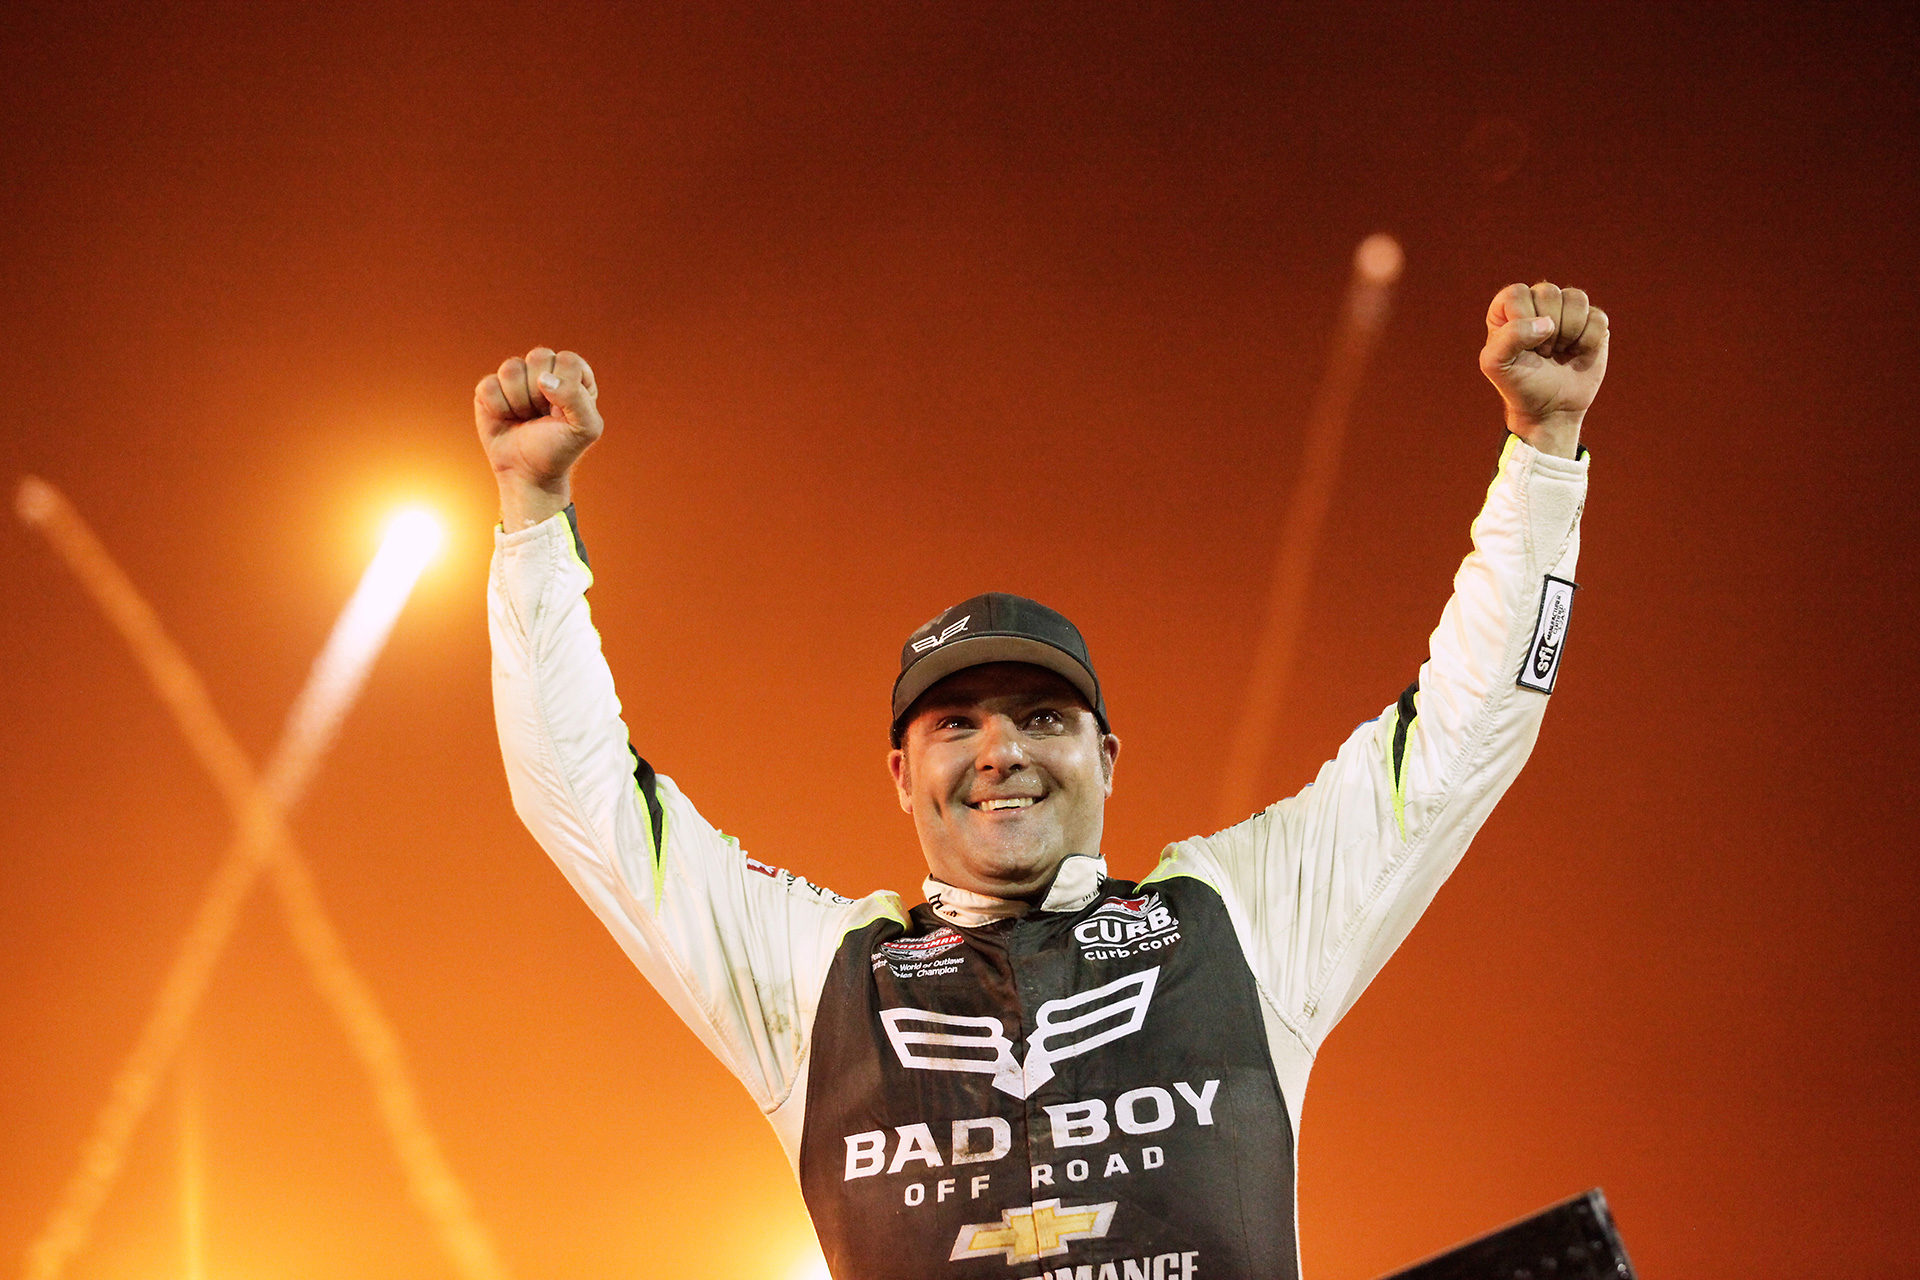 Donny Schatz held off strong competition from both Rico Abreu and Christopher Bell to win The 33rd Kings Royal. ( Jeffrey Turford / TDP )